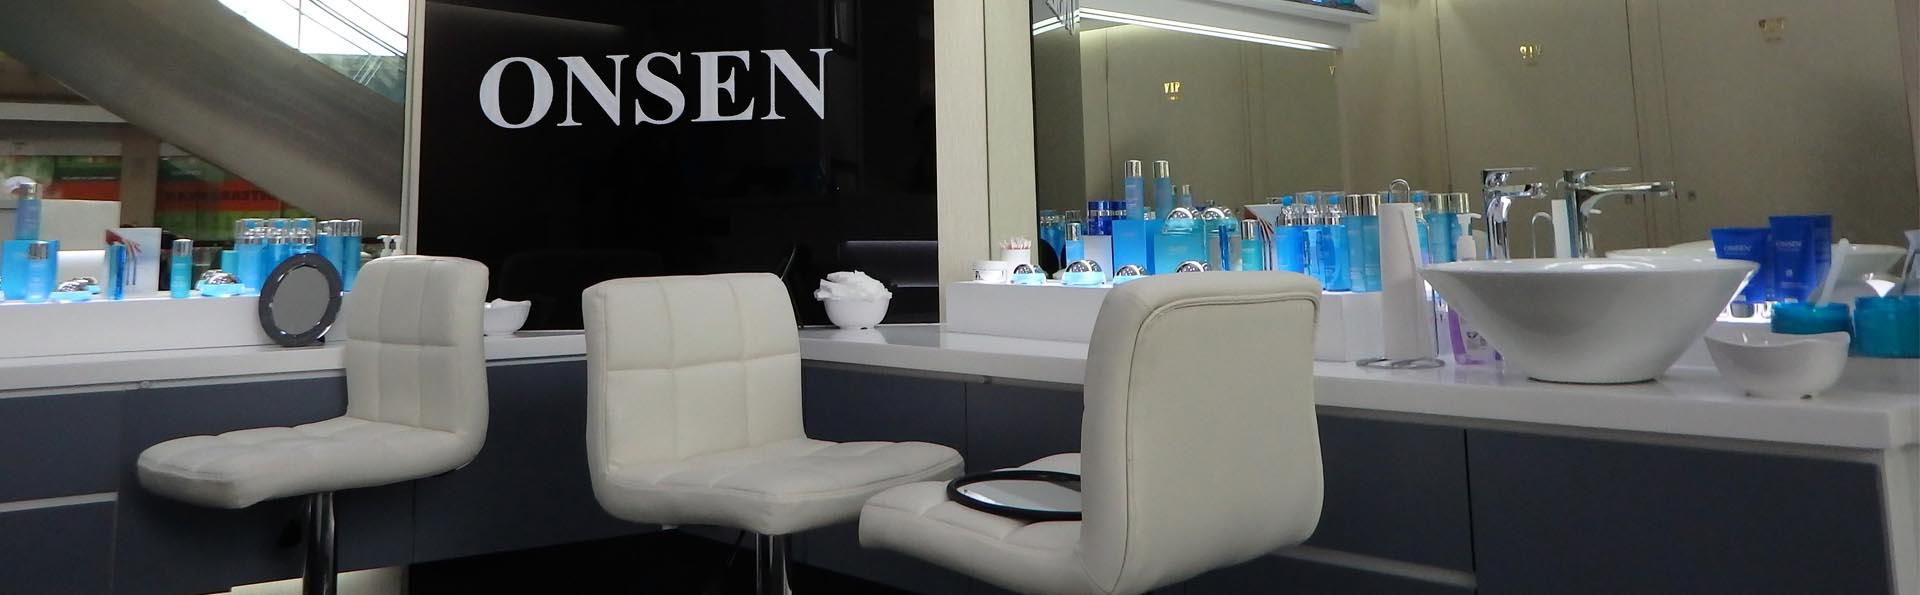 Onsen - Beauty and Skincare in Marina Bay Sands